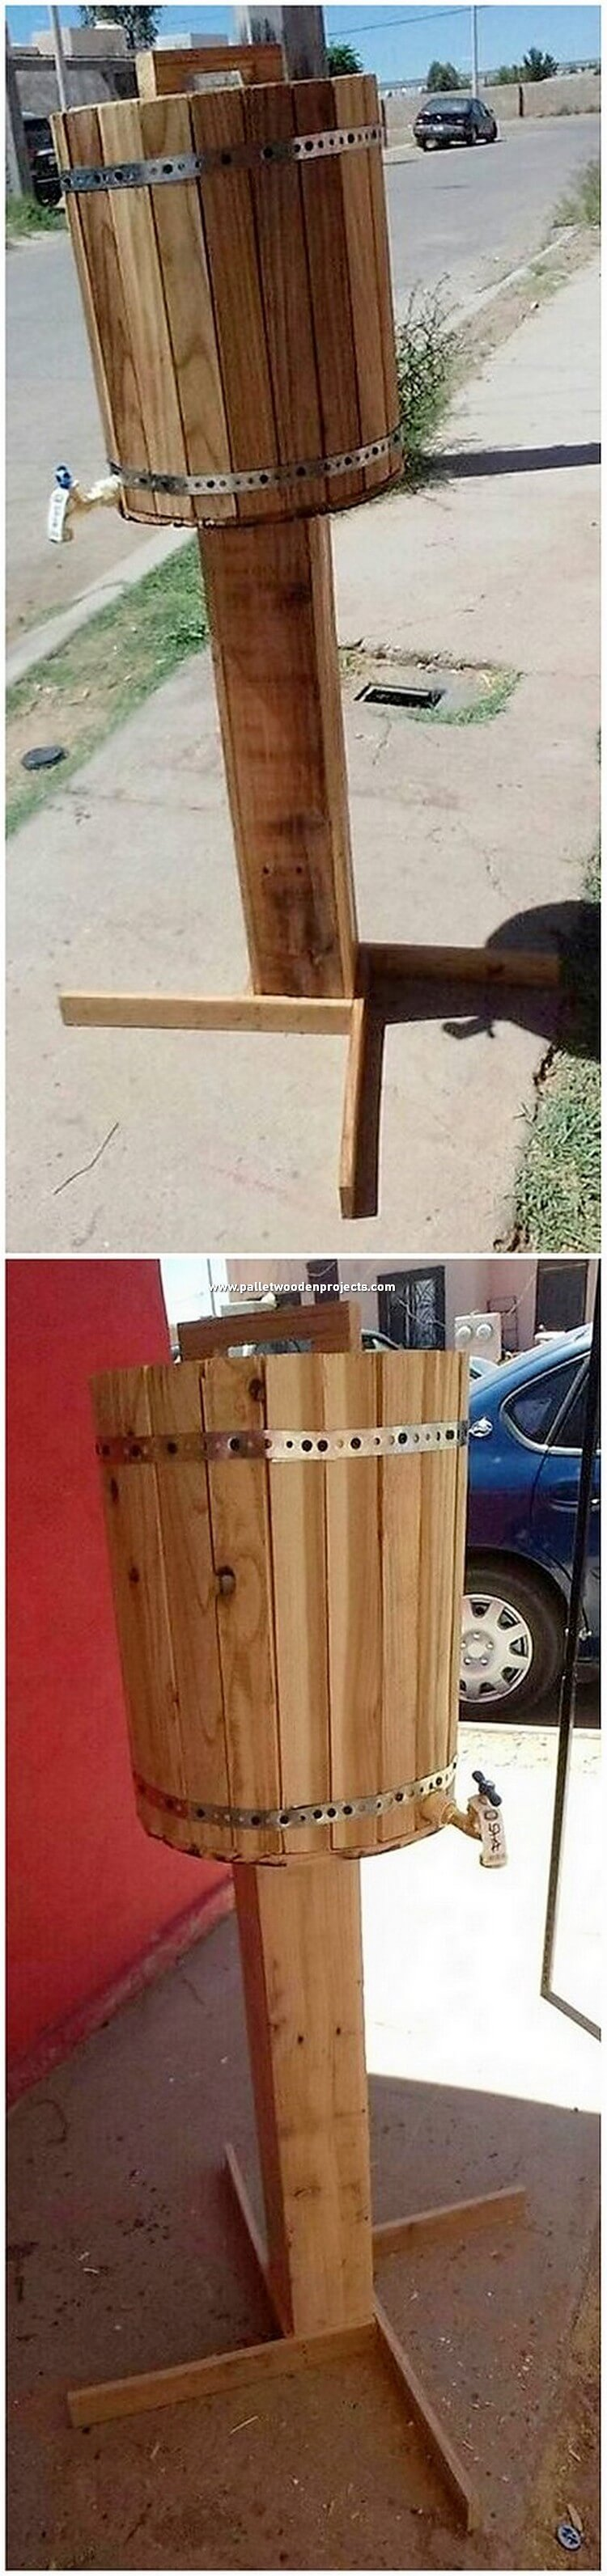 Pallet Cooler with Stand